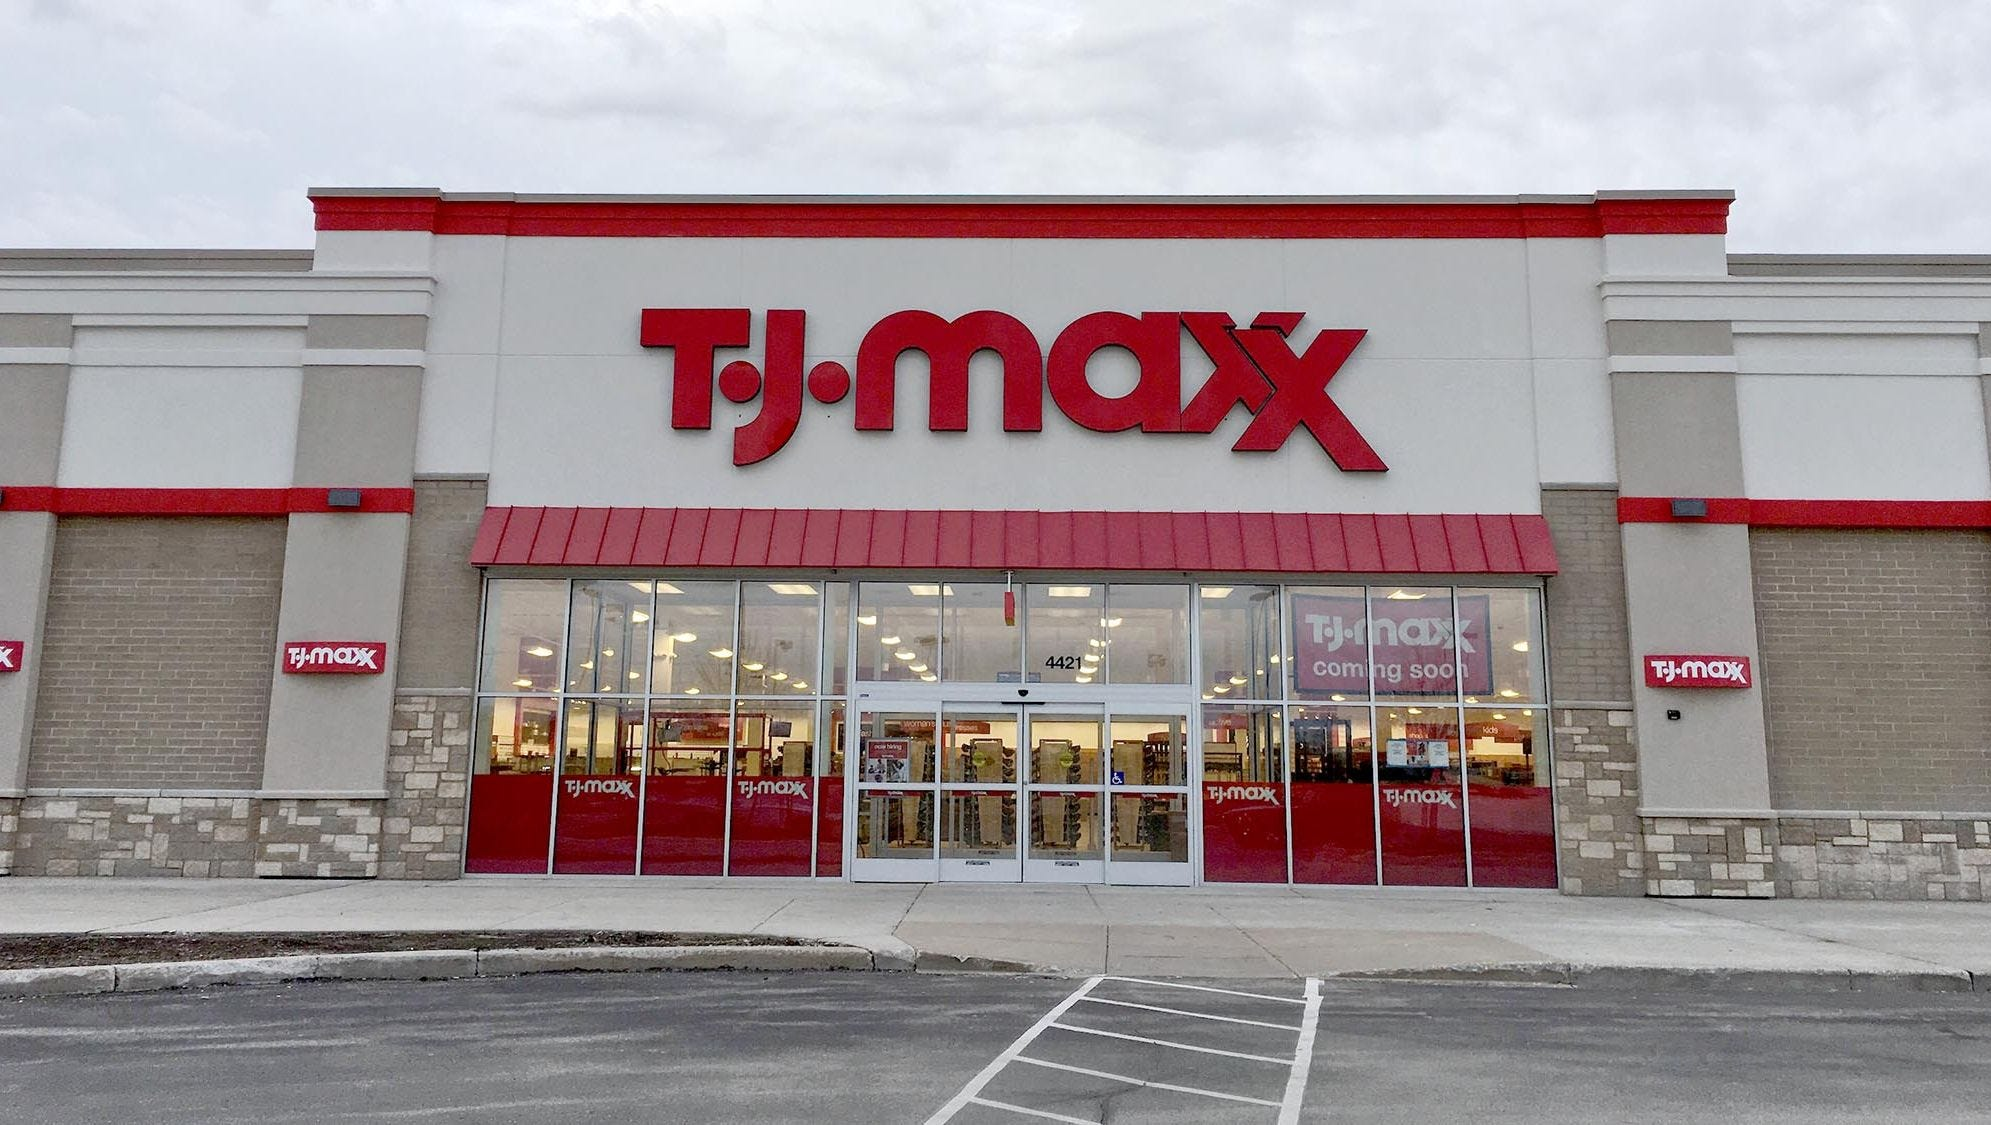 TJ MAXX: Free Shipping on $89+ orders. Amazing savings on brand-name clothing, shoes, home decor, handbags & more that fit your style